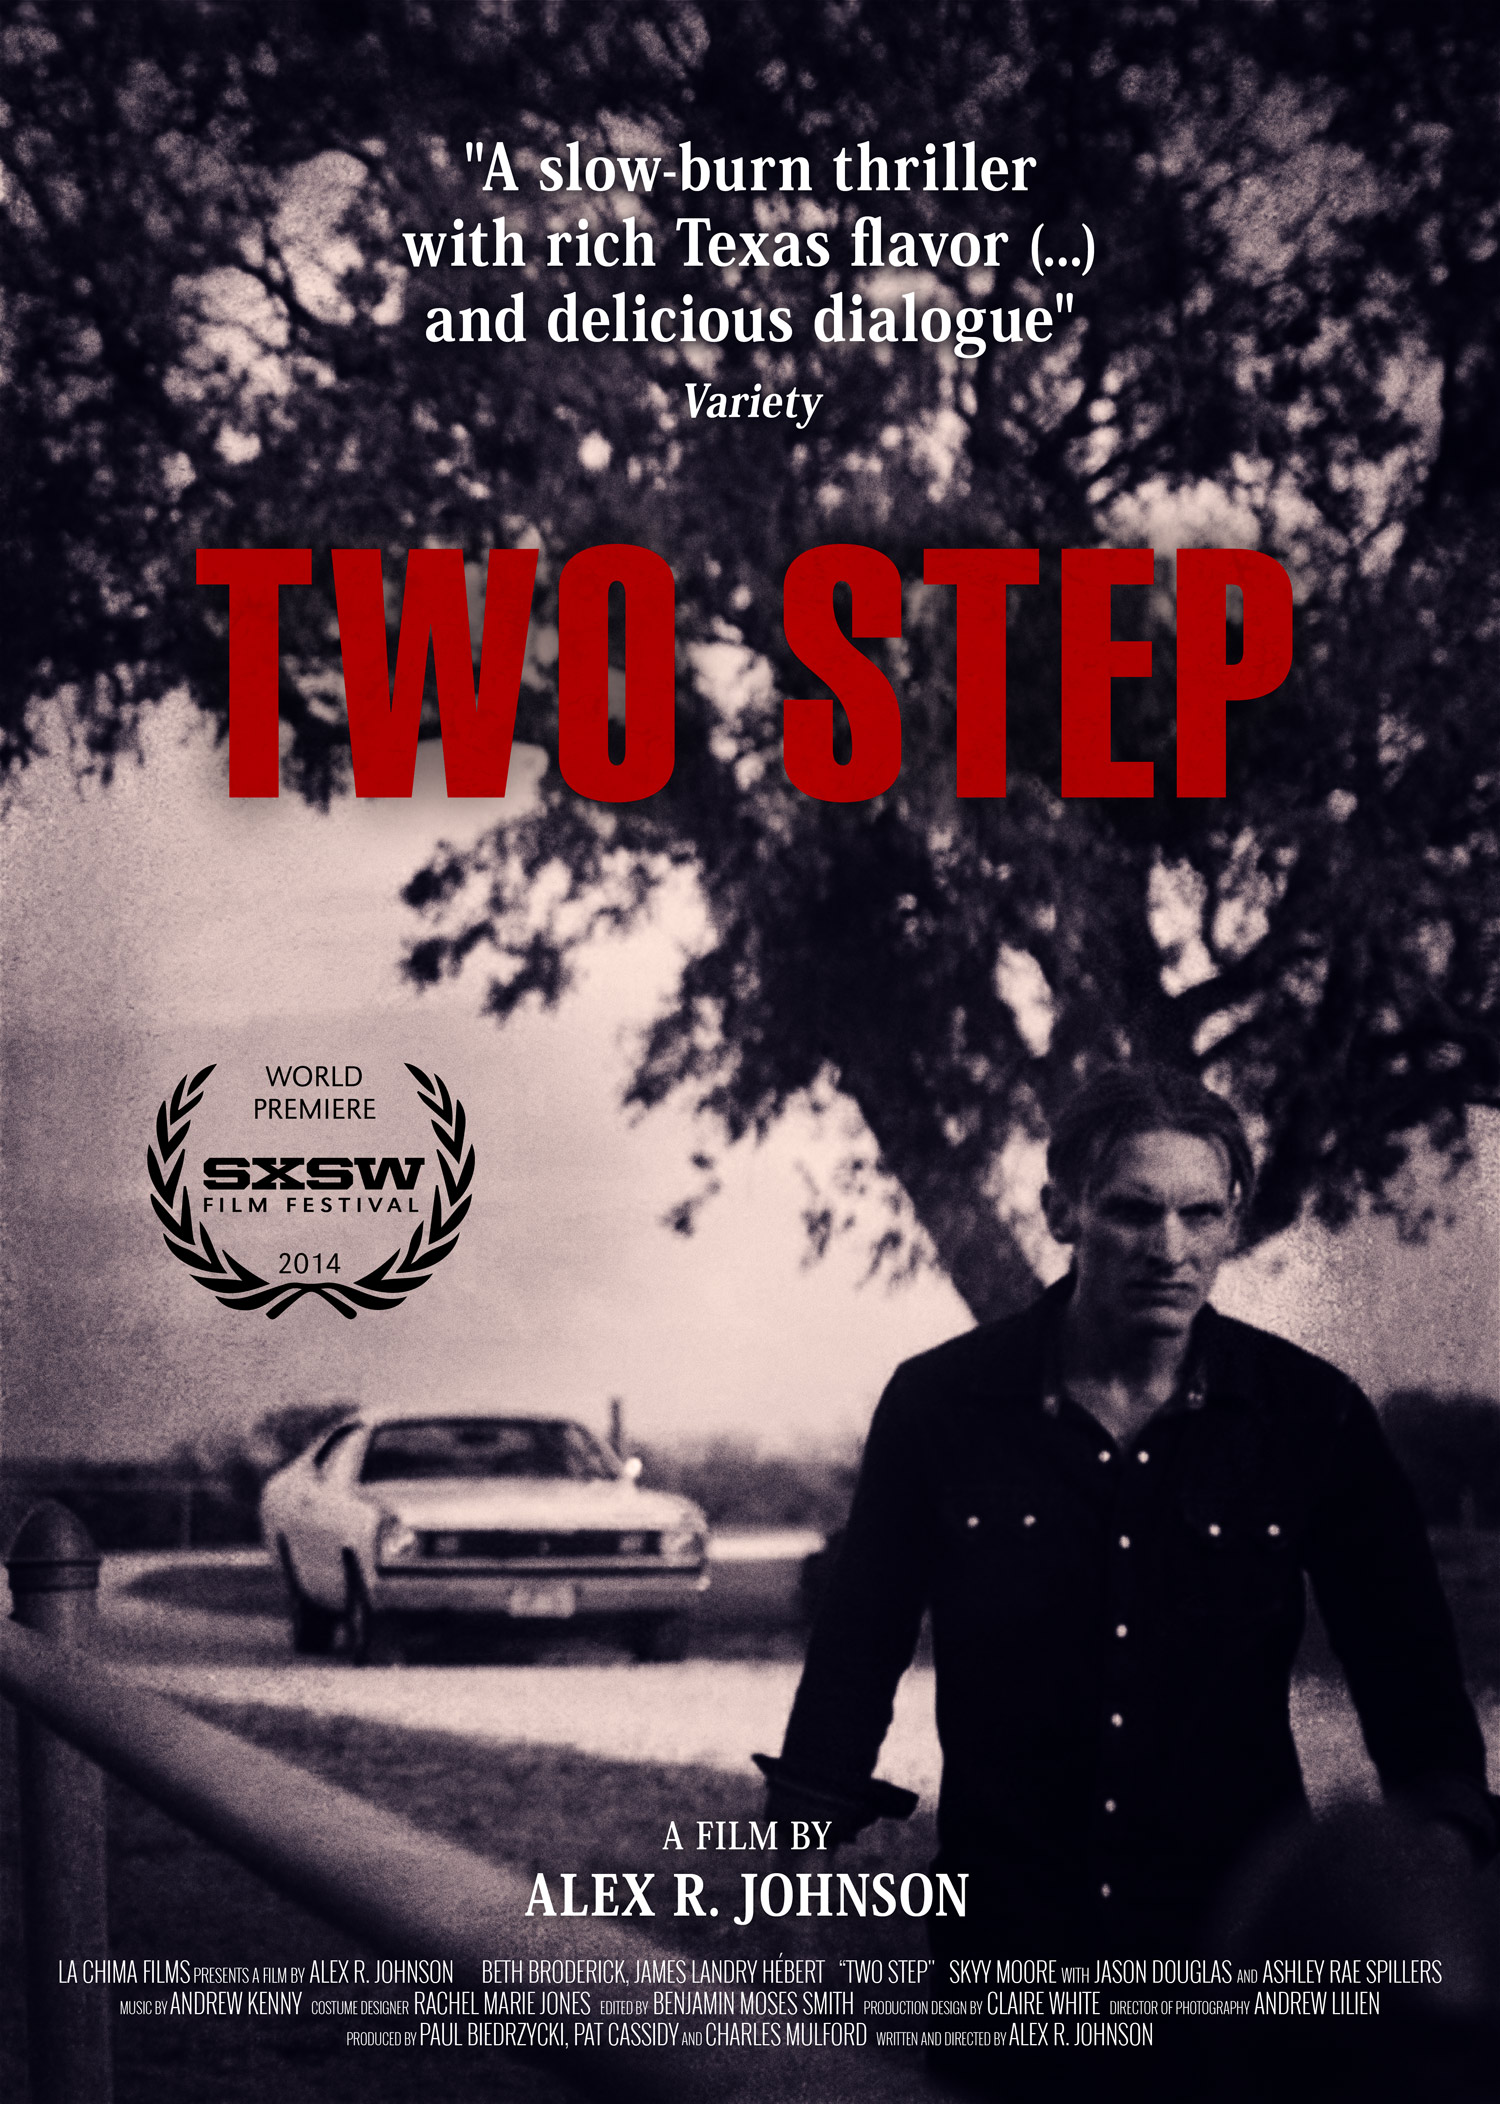 Set in Texas, the film Two-Step debuted at SXSW in 2014 and was nominated for a SXSW Audience Award, among others.